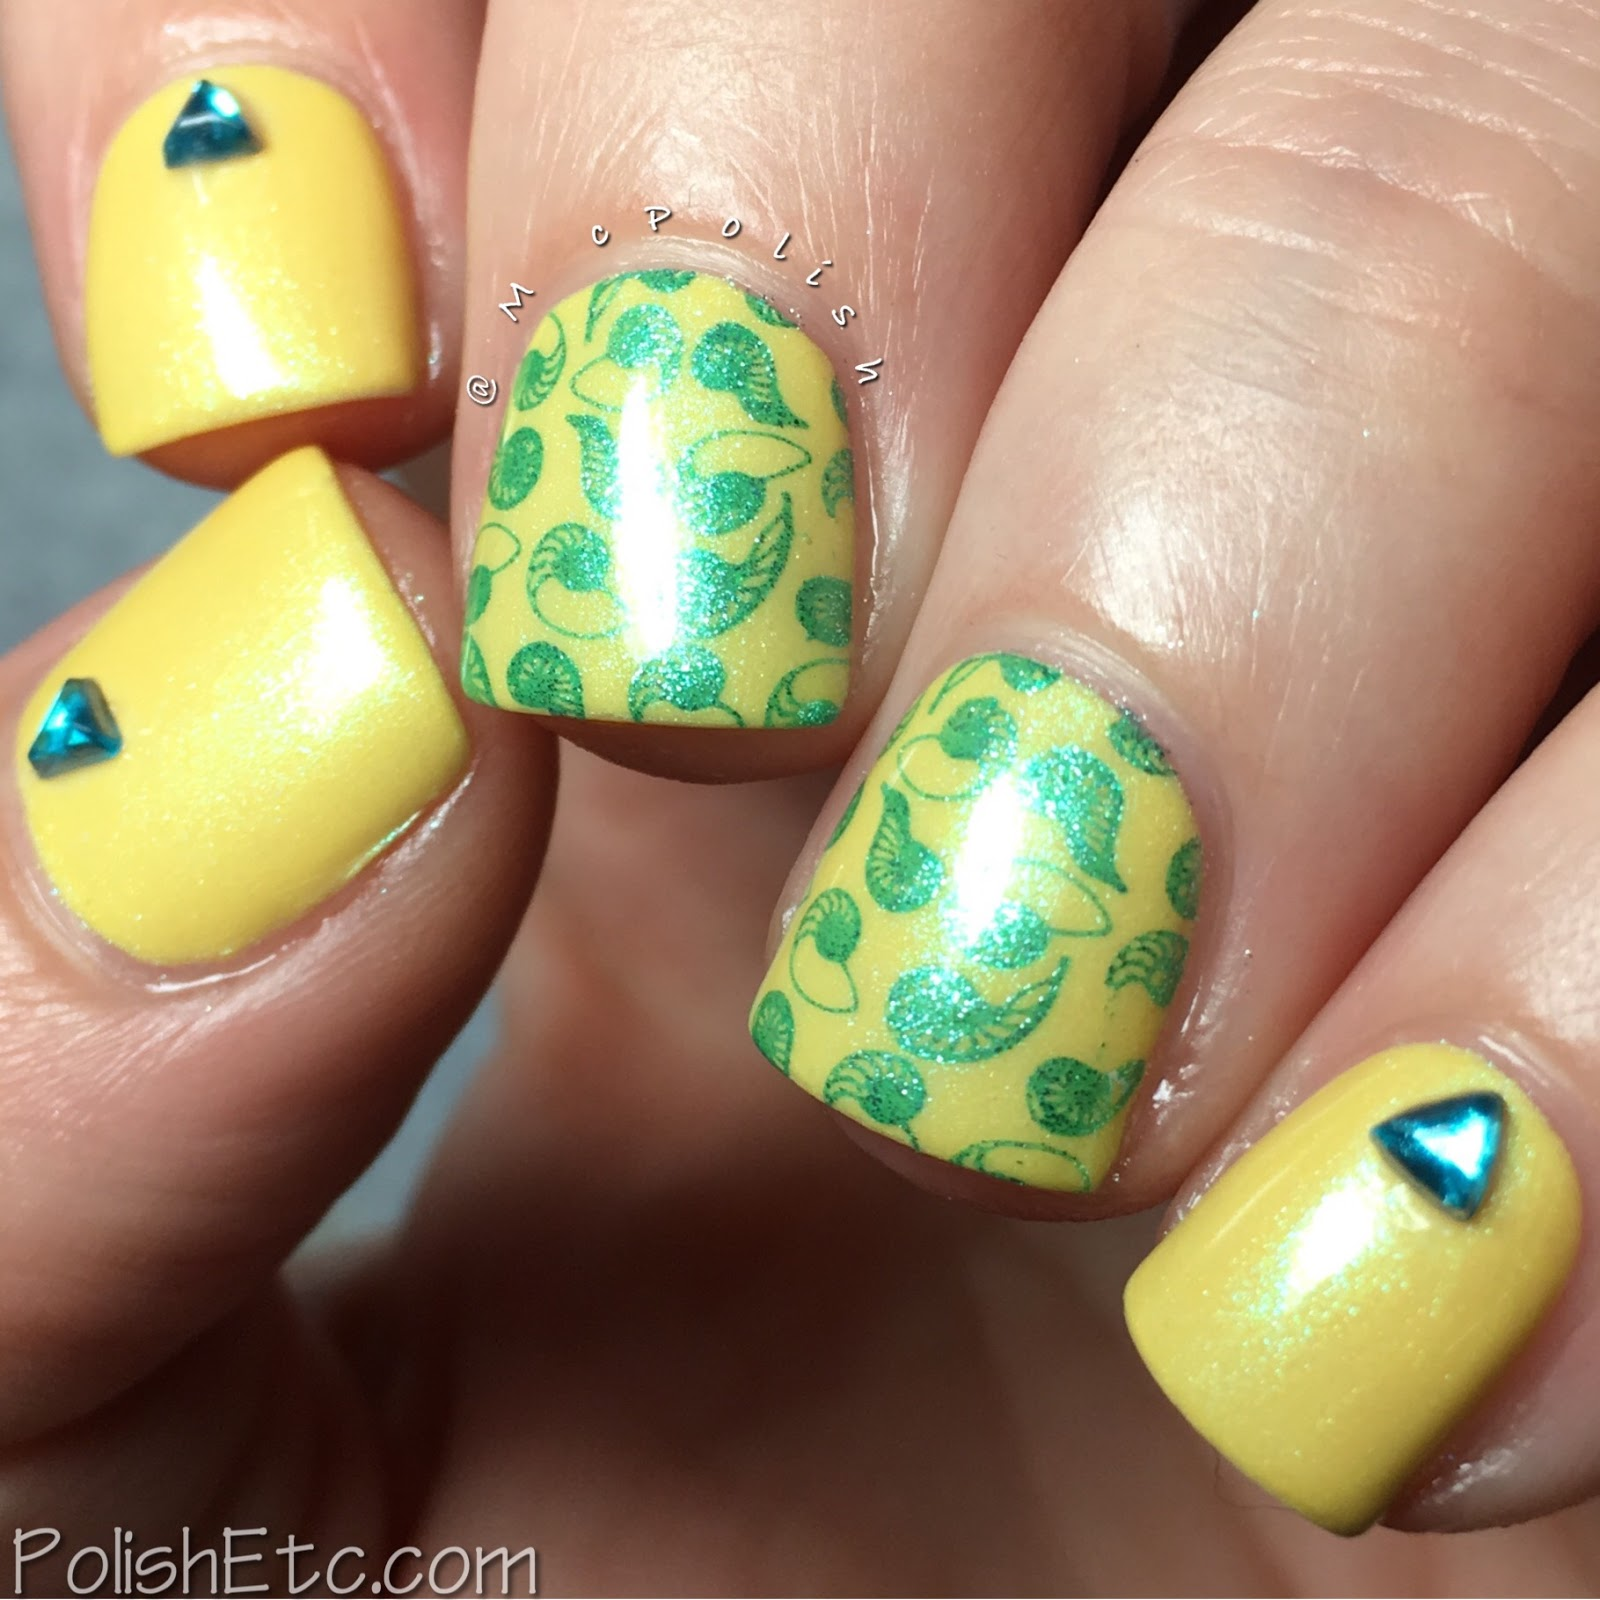 Yellow Nails for the #31DC2017Weekly - McPolish - Zoya Daisy stamping